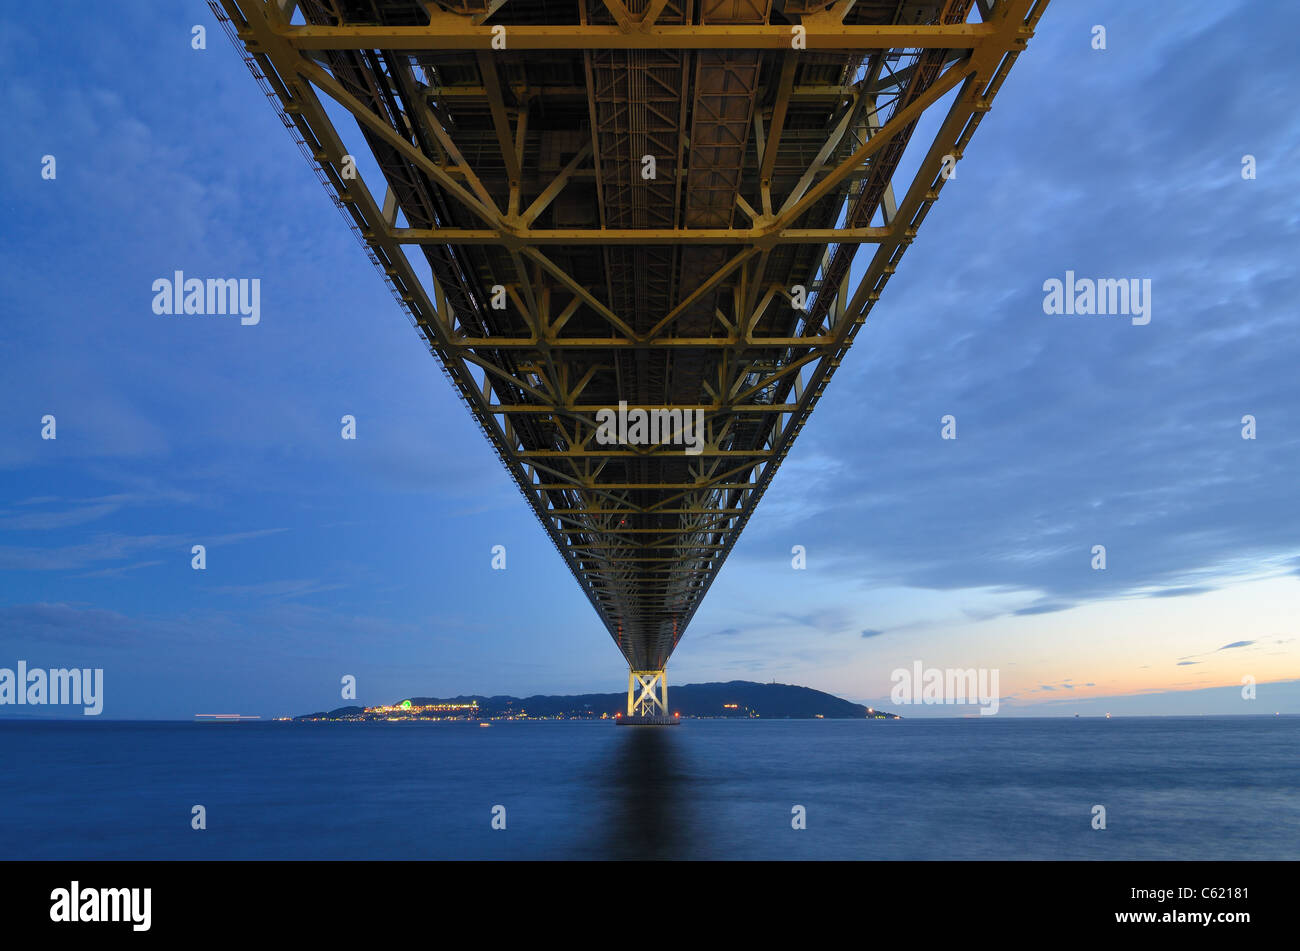 Akashi Kaikyo Bridge spans the Seto Inland Sea with the longest central span of any suspension bridge in the world. - Stock Image